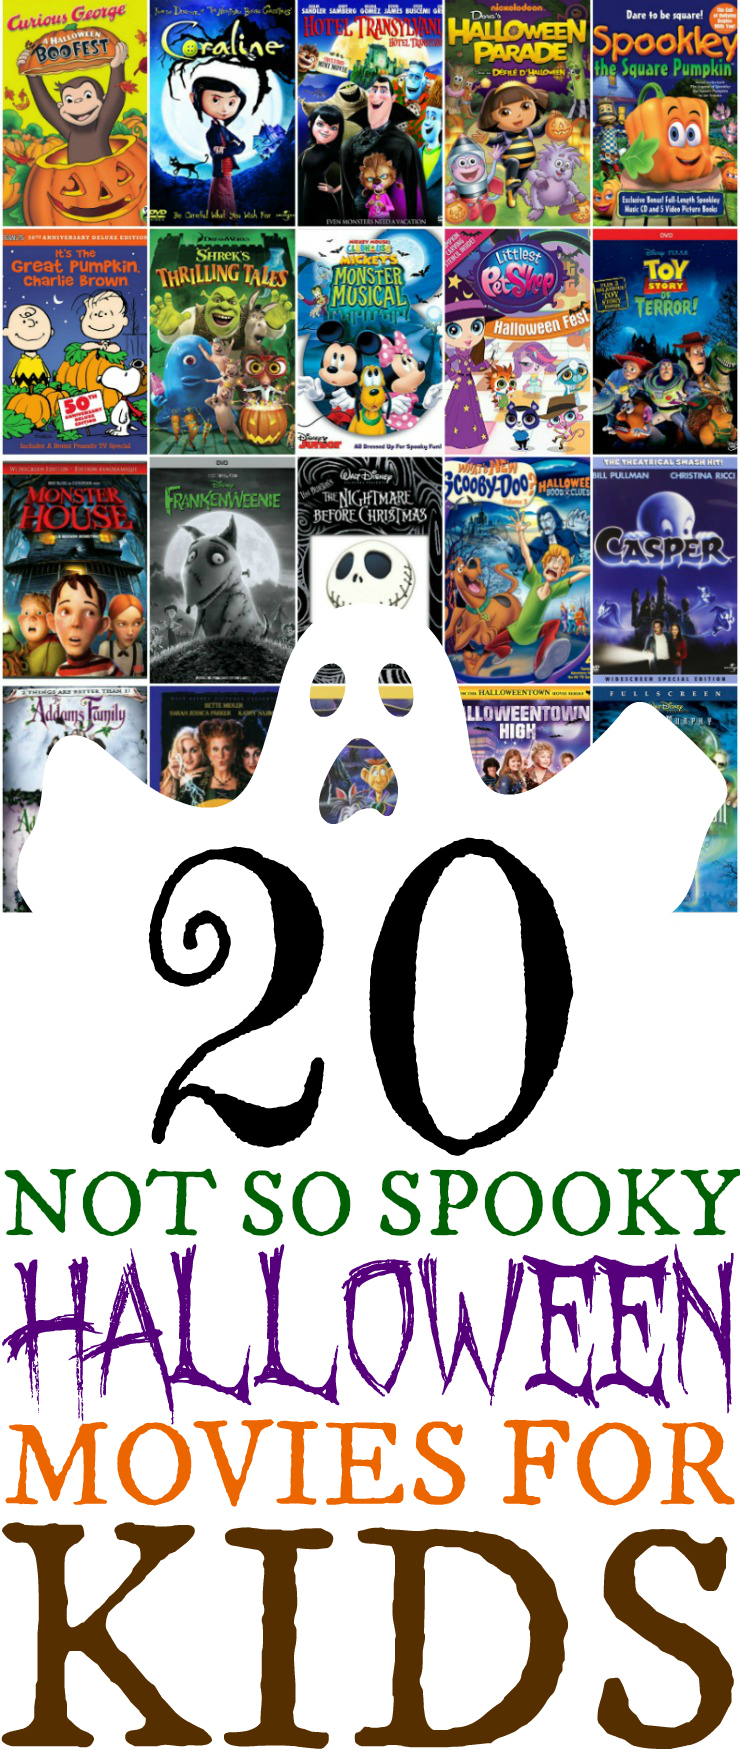 20 Not So Spooky Halloween Movies For Kids